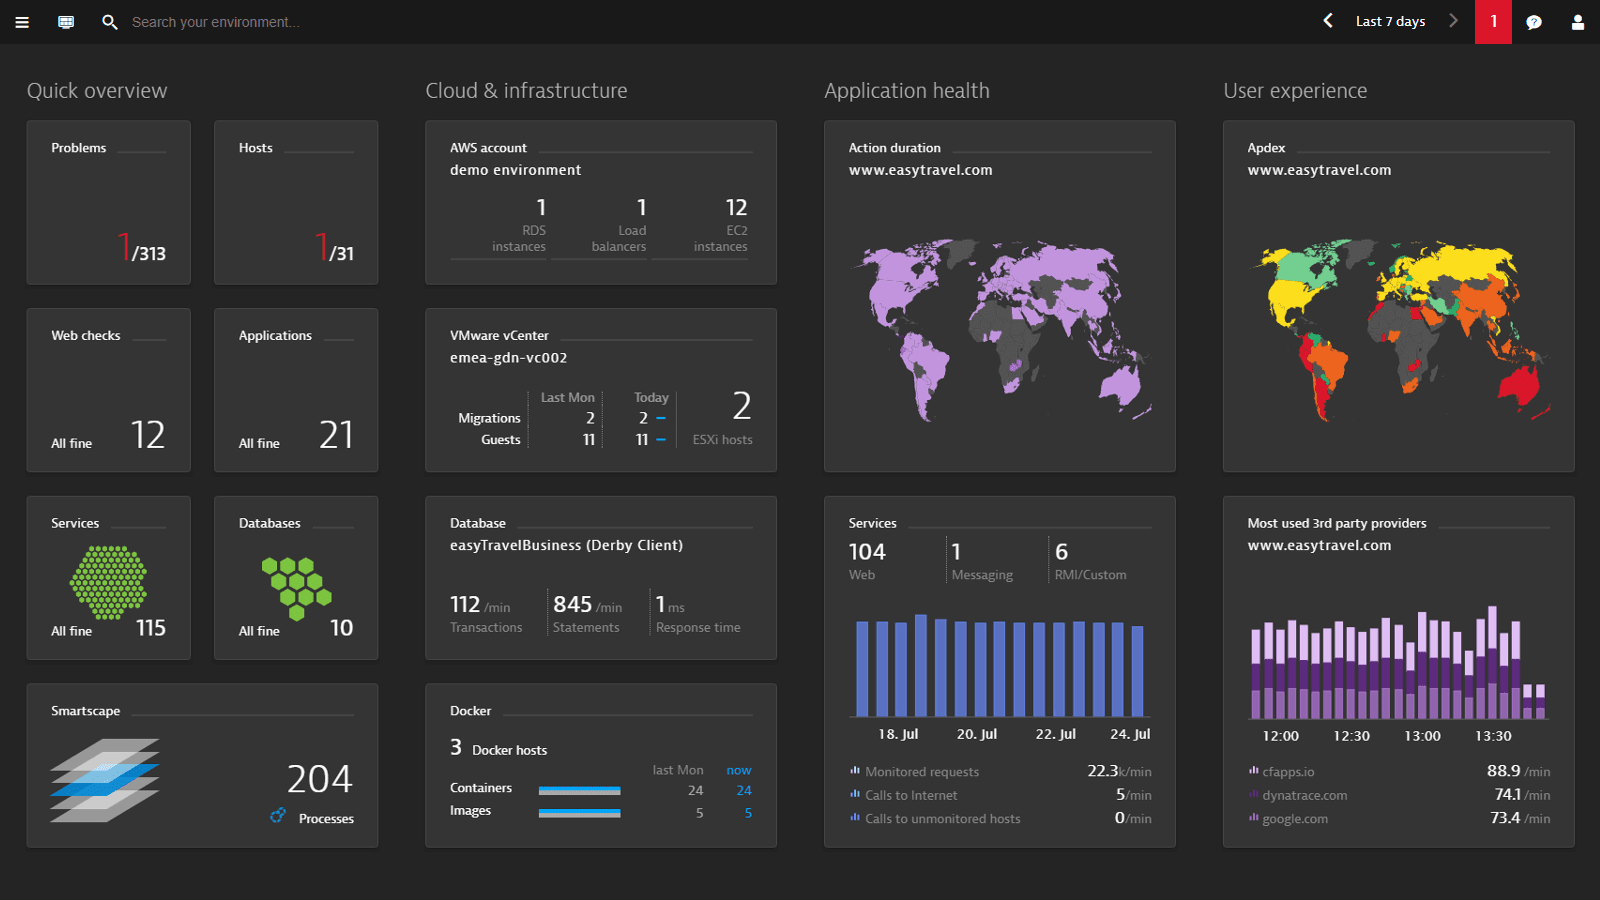 Dynatrace dashboard views show web application performance metrics in customizable tiles.